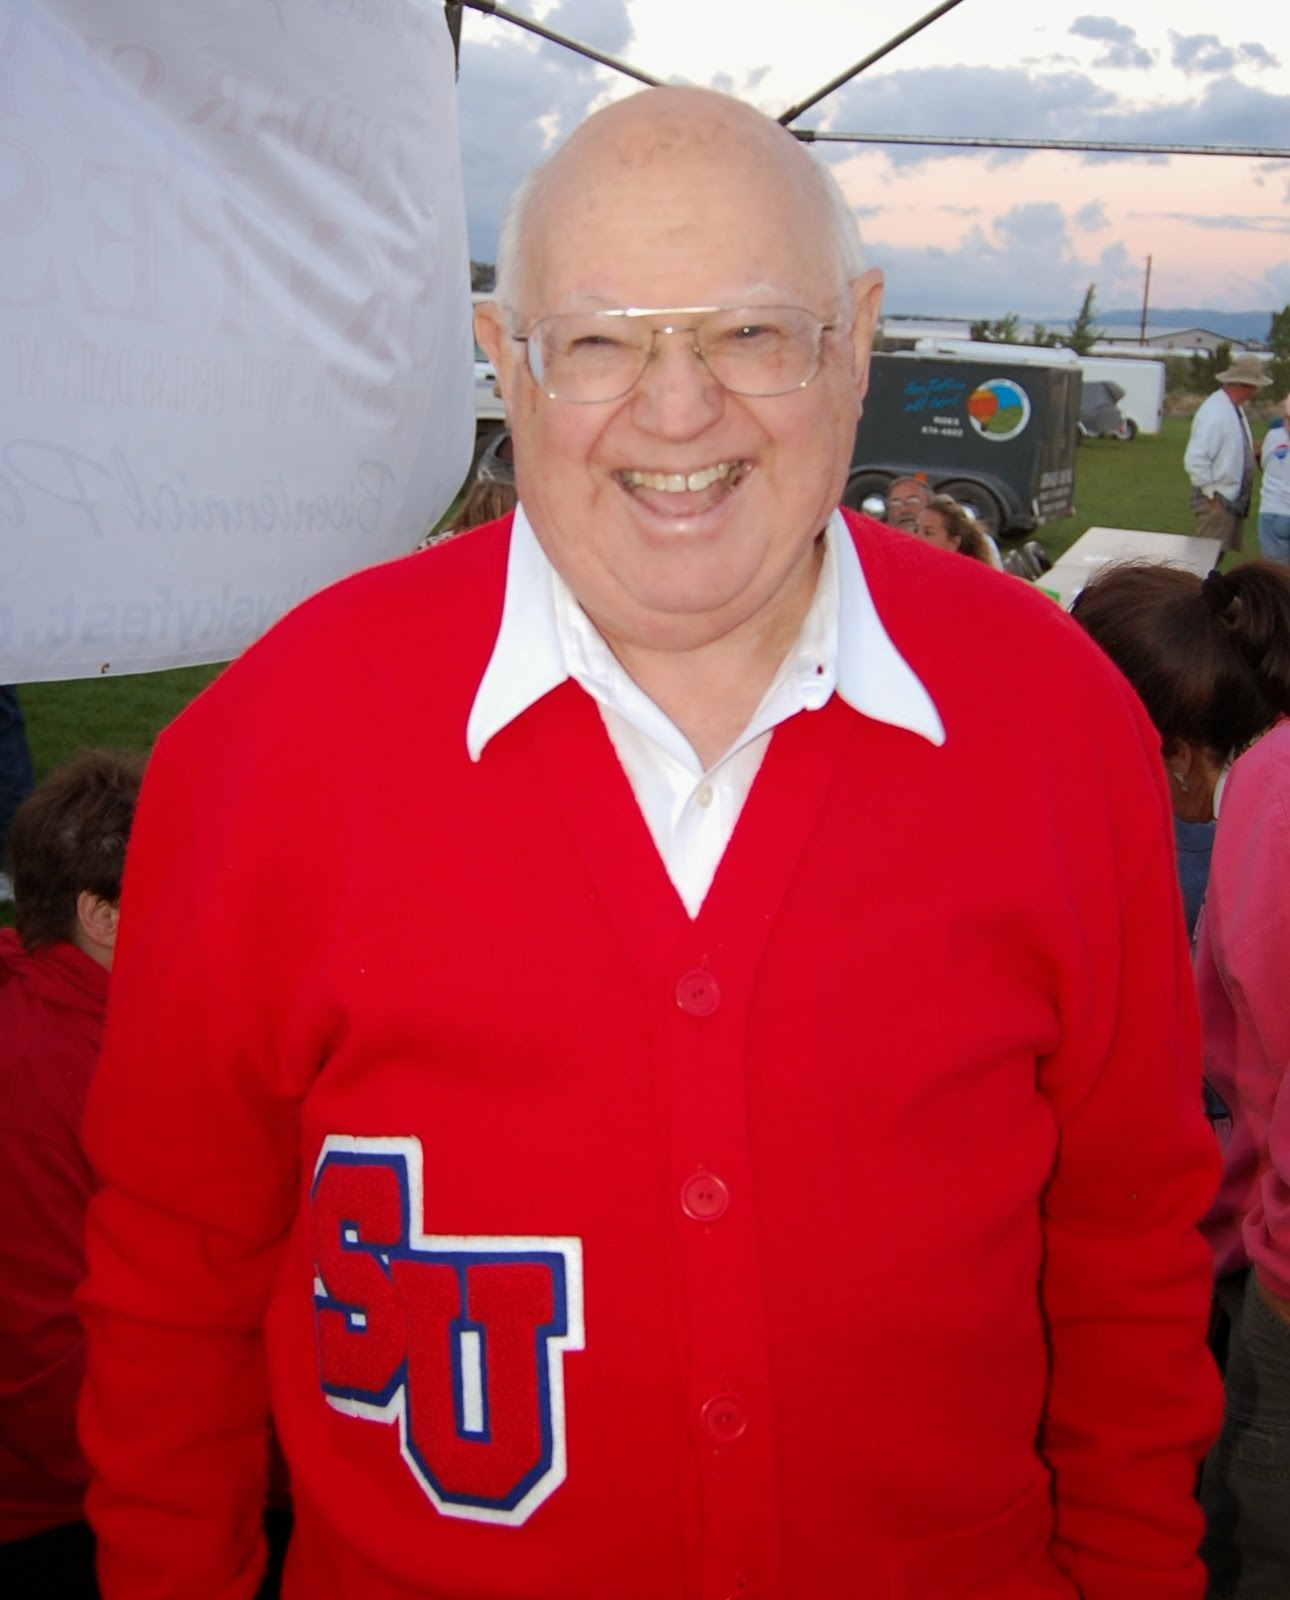 Former Cedar City Mayor and former Southern Utah University President Gerald R. Sherratt died Friday, July 8, 2016, in Orem, Utah, the university announced in a press release, July 8, 2016 | Photo provided by Southern Utah University, St. George News/Cedar City News